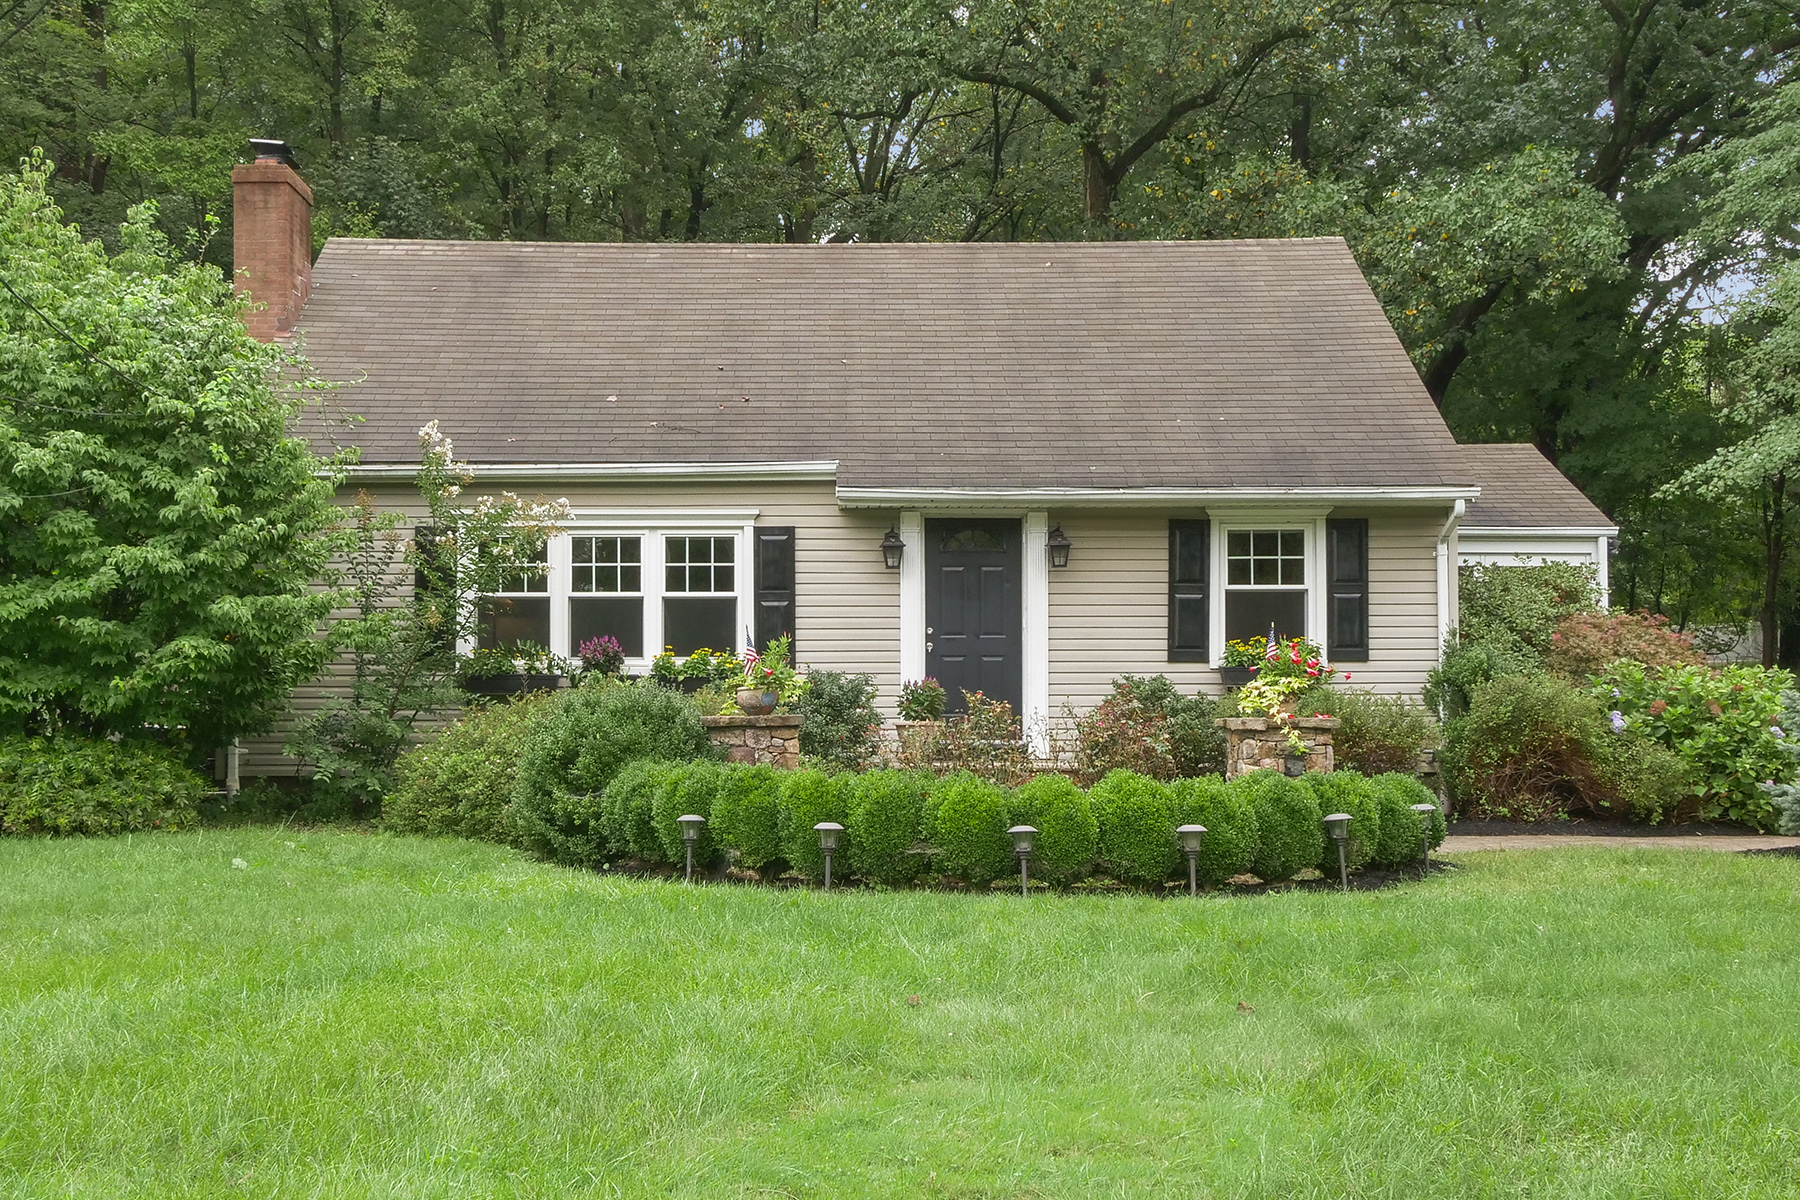 Single Family Homes for Active at Fantastic Curb Appeal! 71 Boonton Avenue Montville, New Jersey 07005 United States